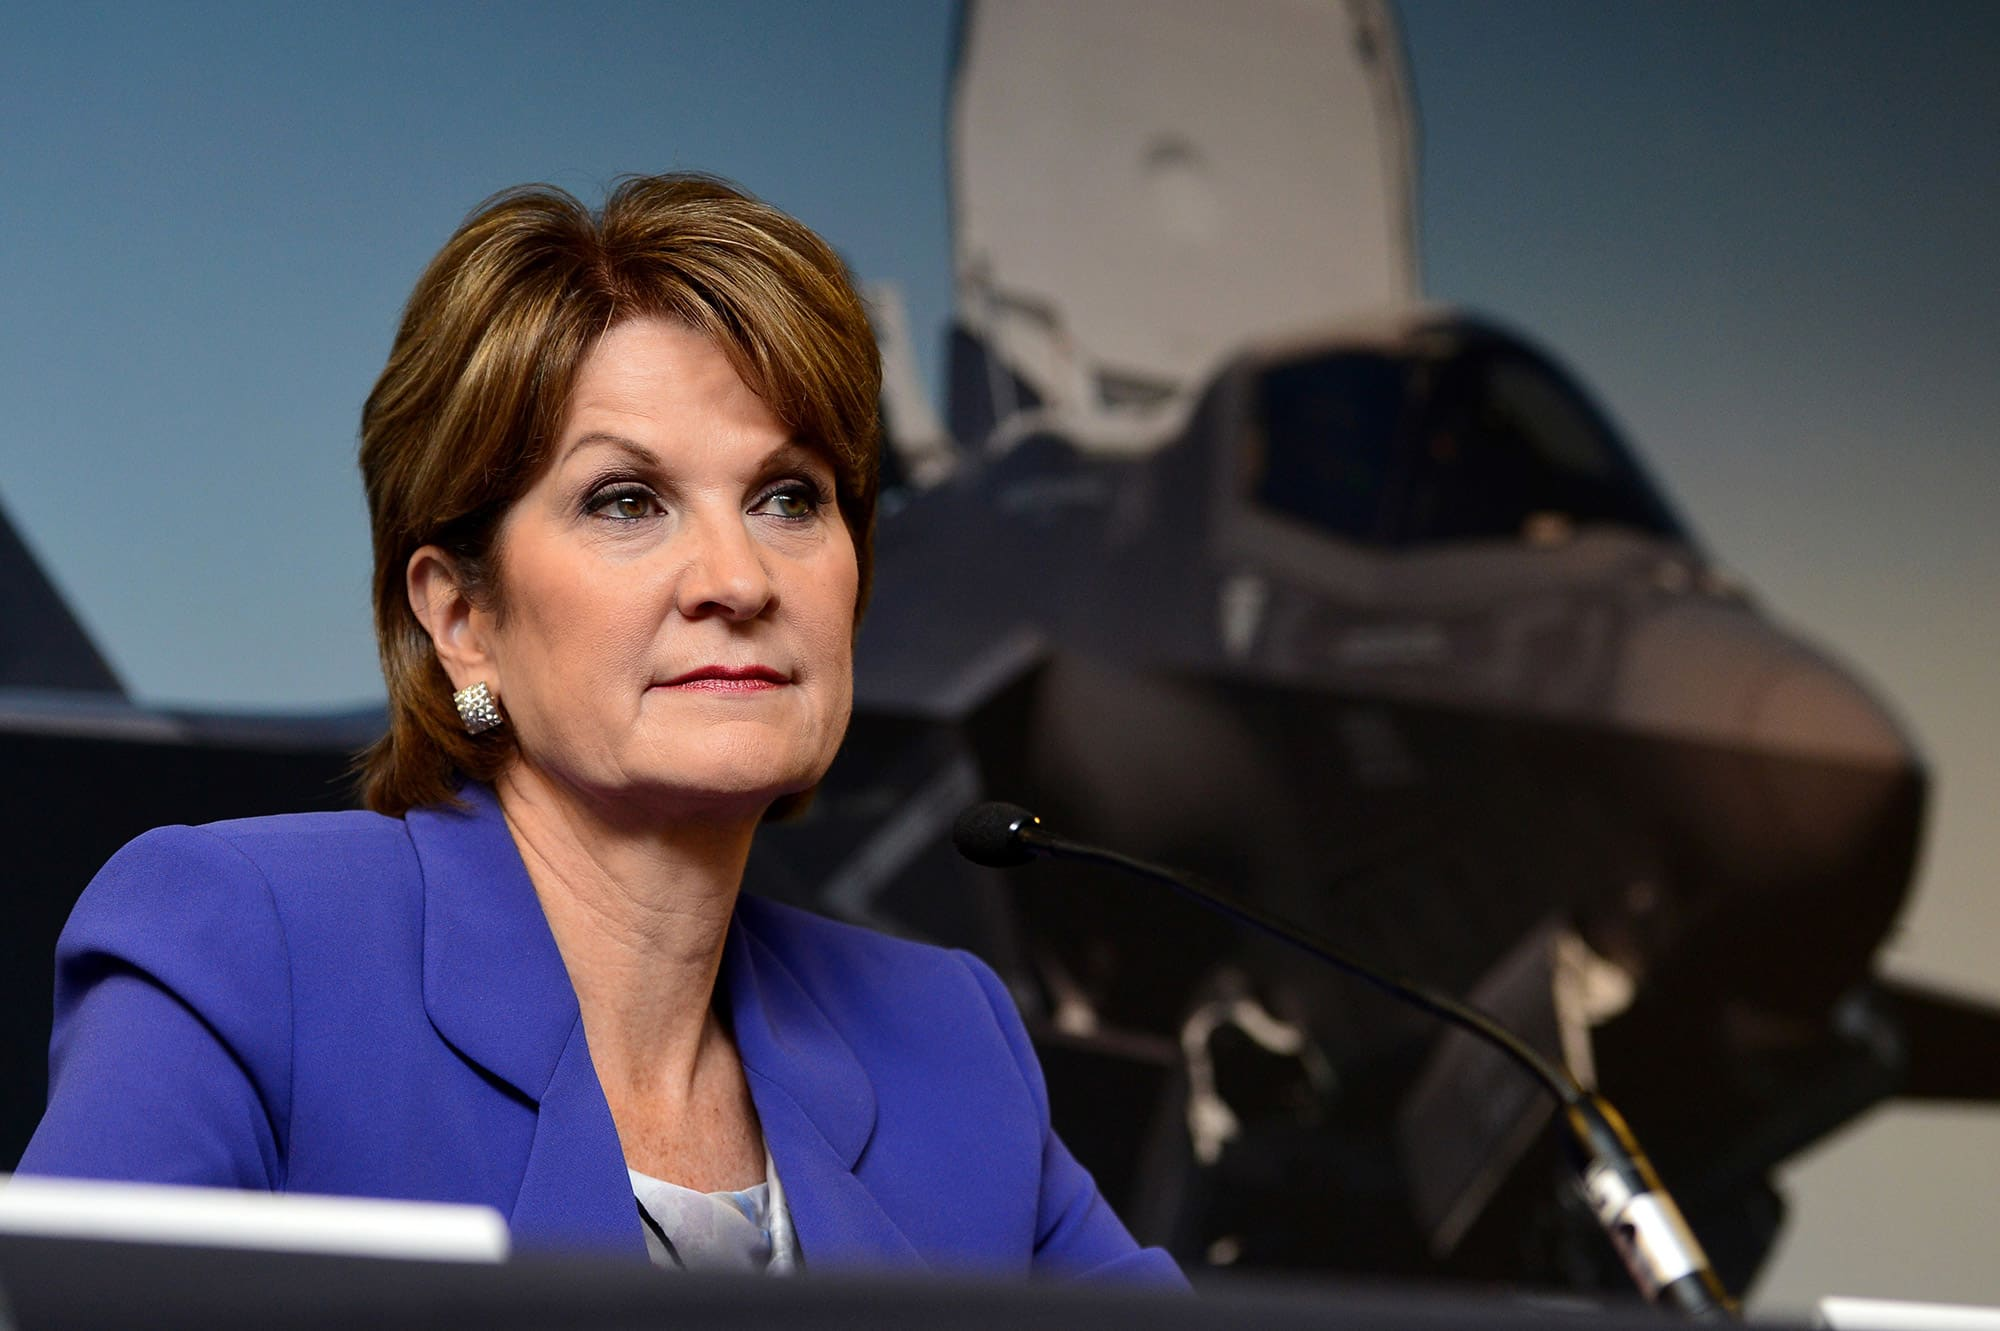 Lockheed Martin has become a stock market juggernaut under CEO Marillyn Hewson